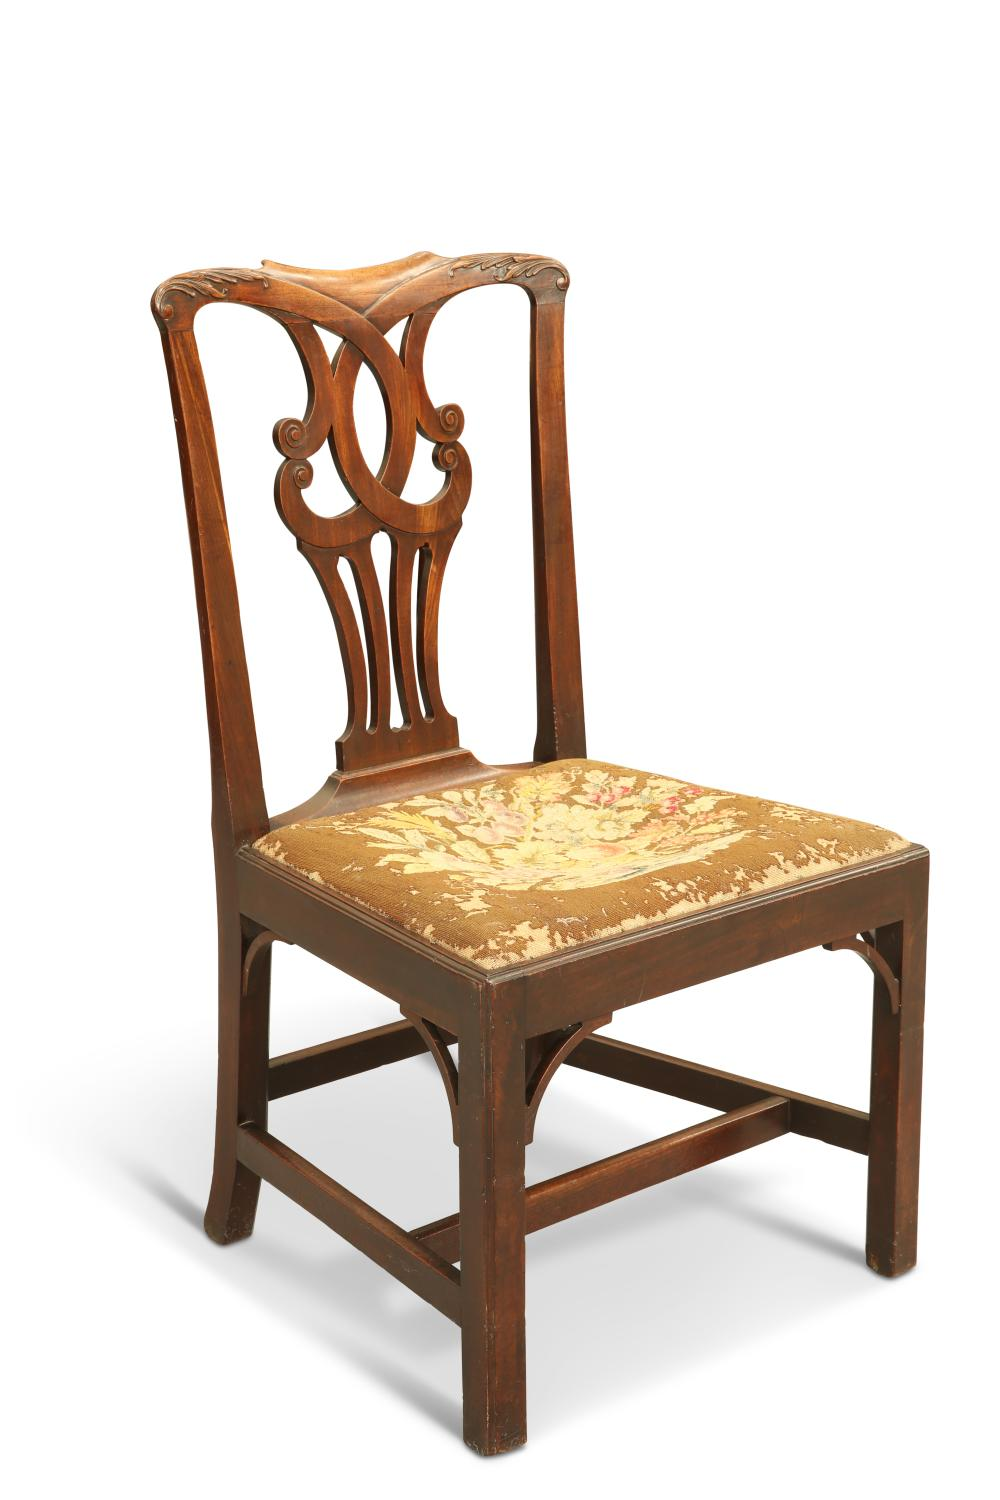 A GEORGE III MAHOGANY SIDECHAIR, 18TH CENTURY, the crest rail carved with l